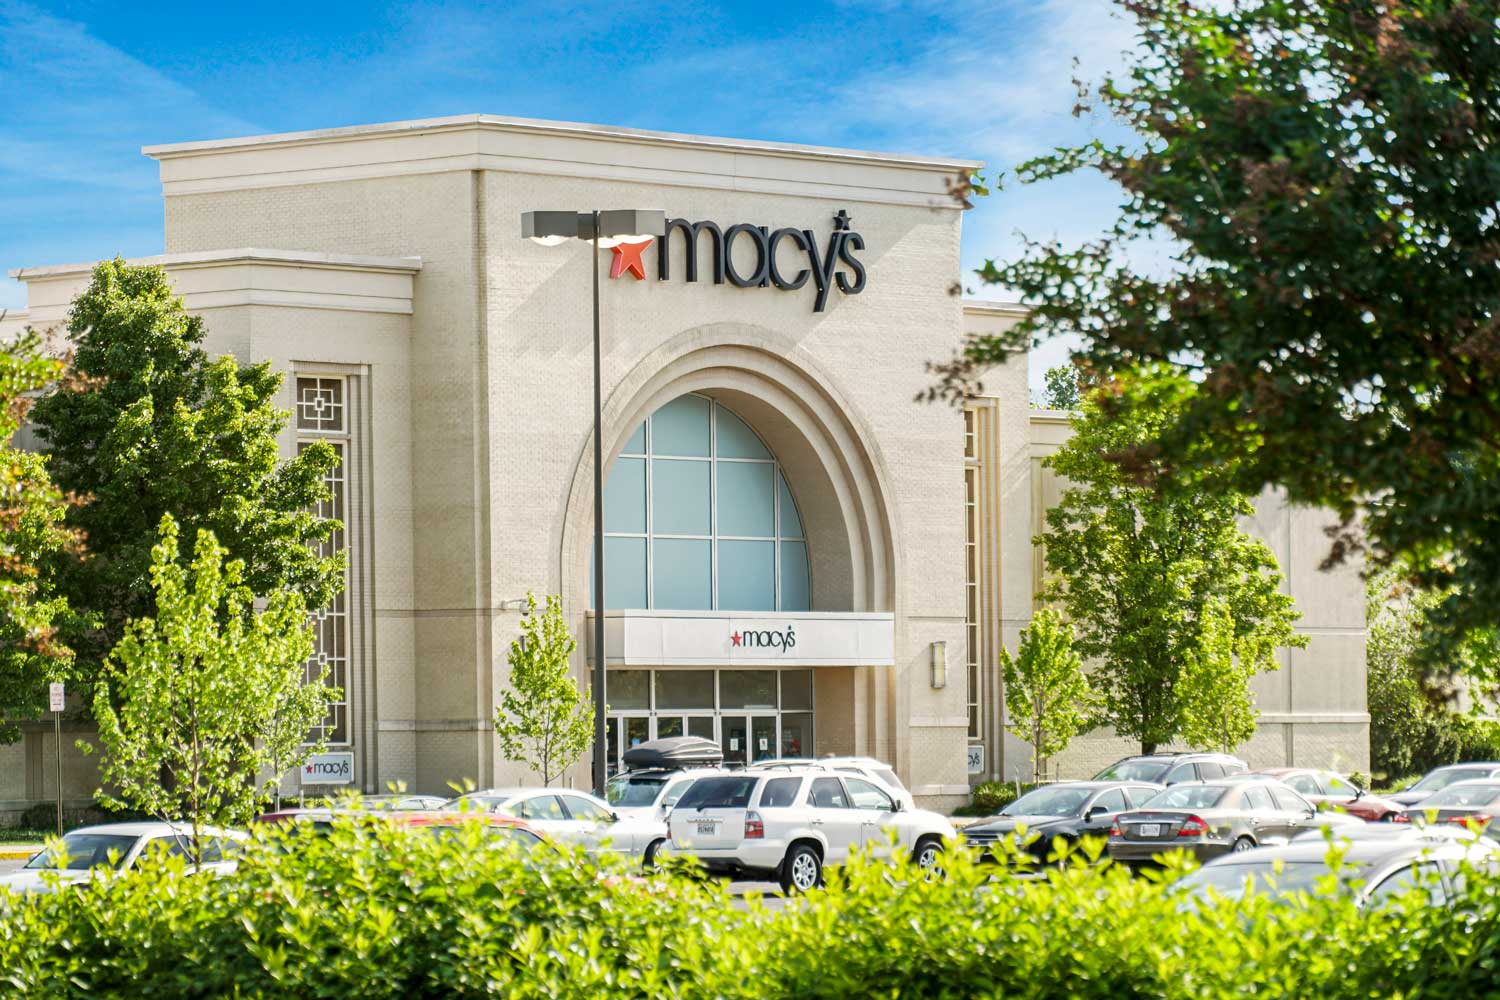 Macy's is 15 minutes from Heritage Square Apartments in New Carrollton, MD